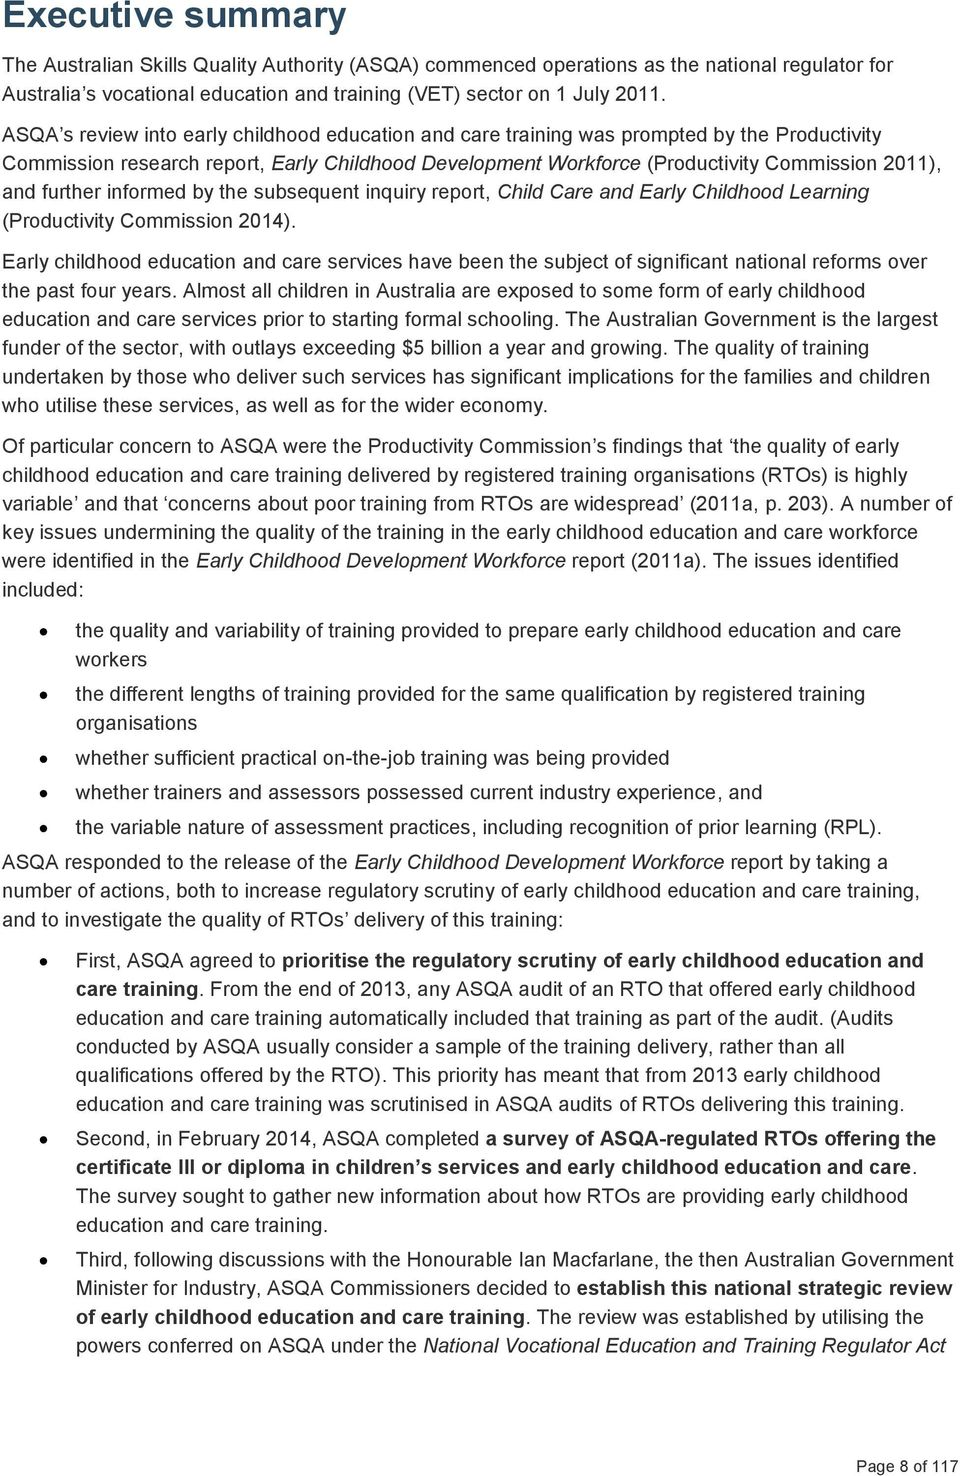 further informed by the subsequent inquiry report, Child Care and Early Childhood Learning (Productivity Commission 2014).